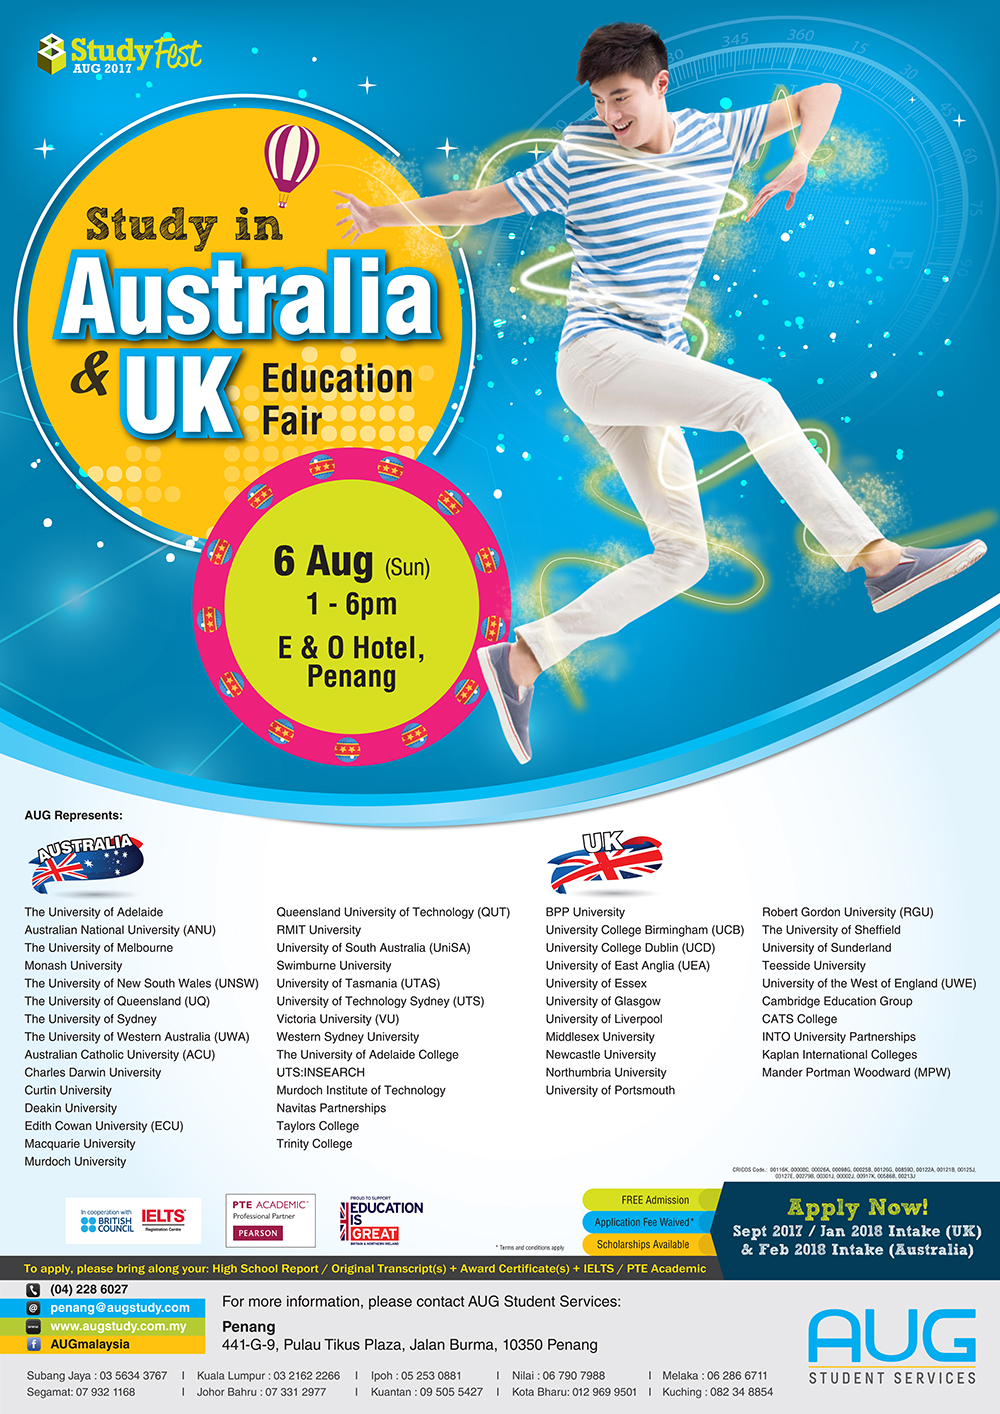 Study in Australia and the UK Education Fair